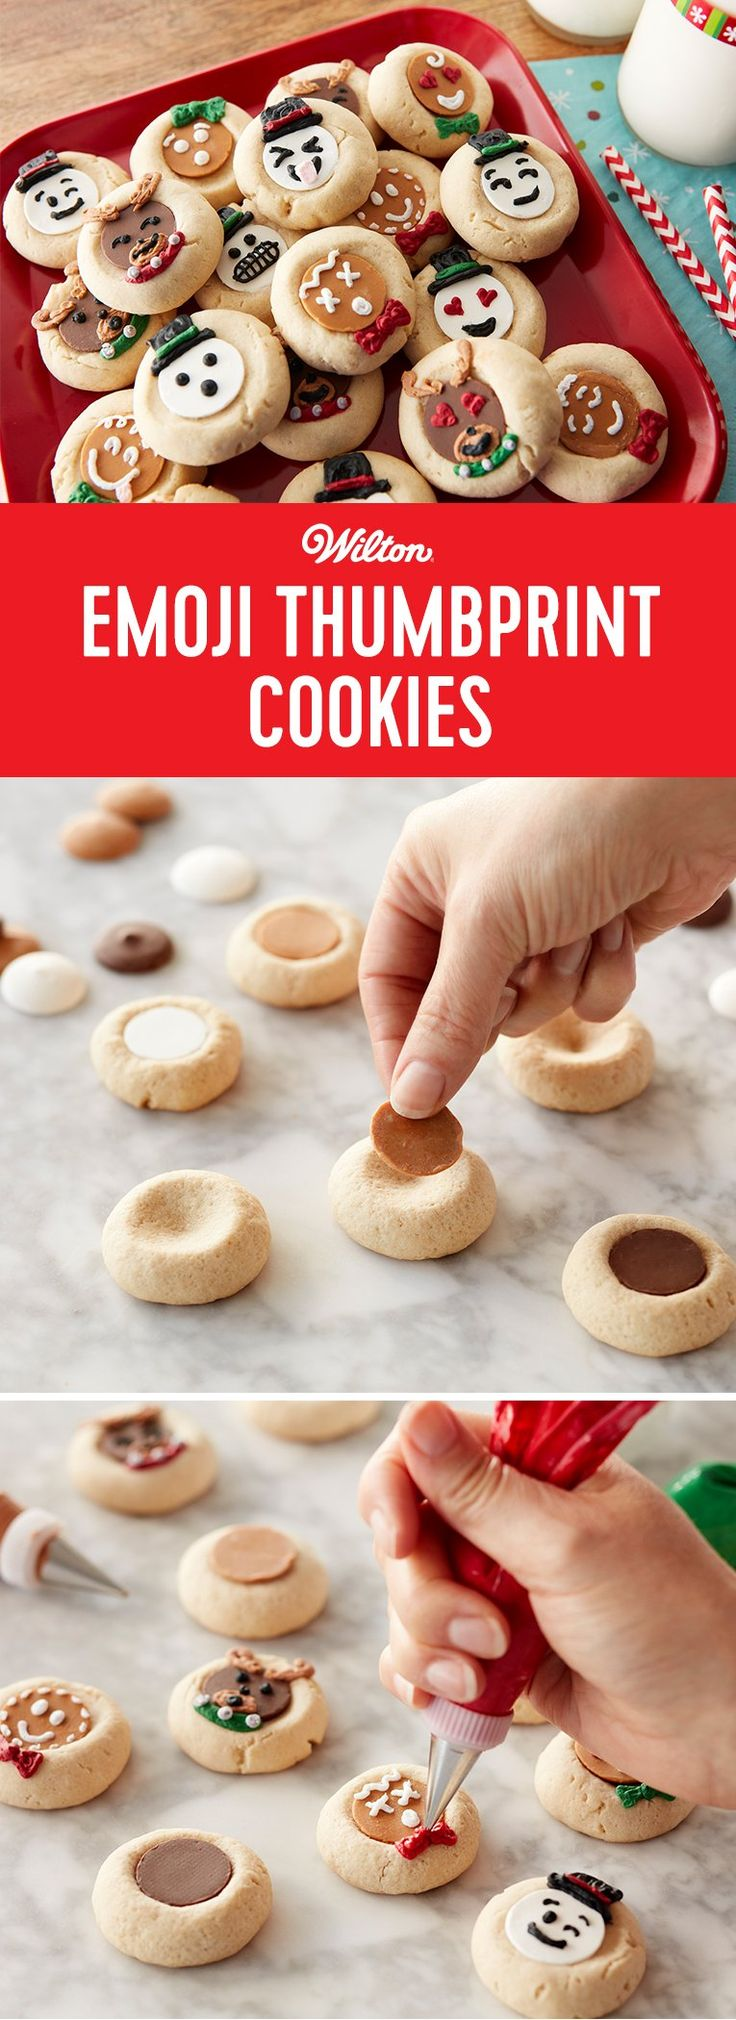 Emoji Thumbprint Cookies - Too cute for actual words, these cookies combine the tradition of baking for the holidays with trendy, Emoji expressions. Easy to decorate, Wilton Candy Melts candy wafers create the reindeer, snowmen and gingerbread faces, icing pipes the facial details. #thumbprintcookies #christmascookies #christmas #candymelts #wiltoncakes